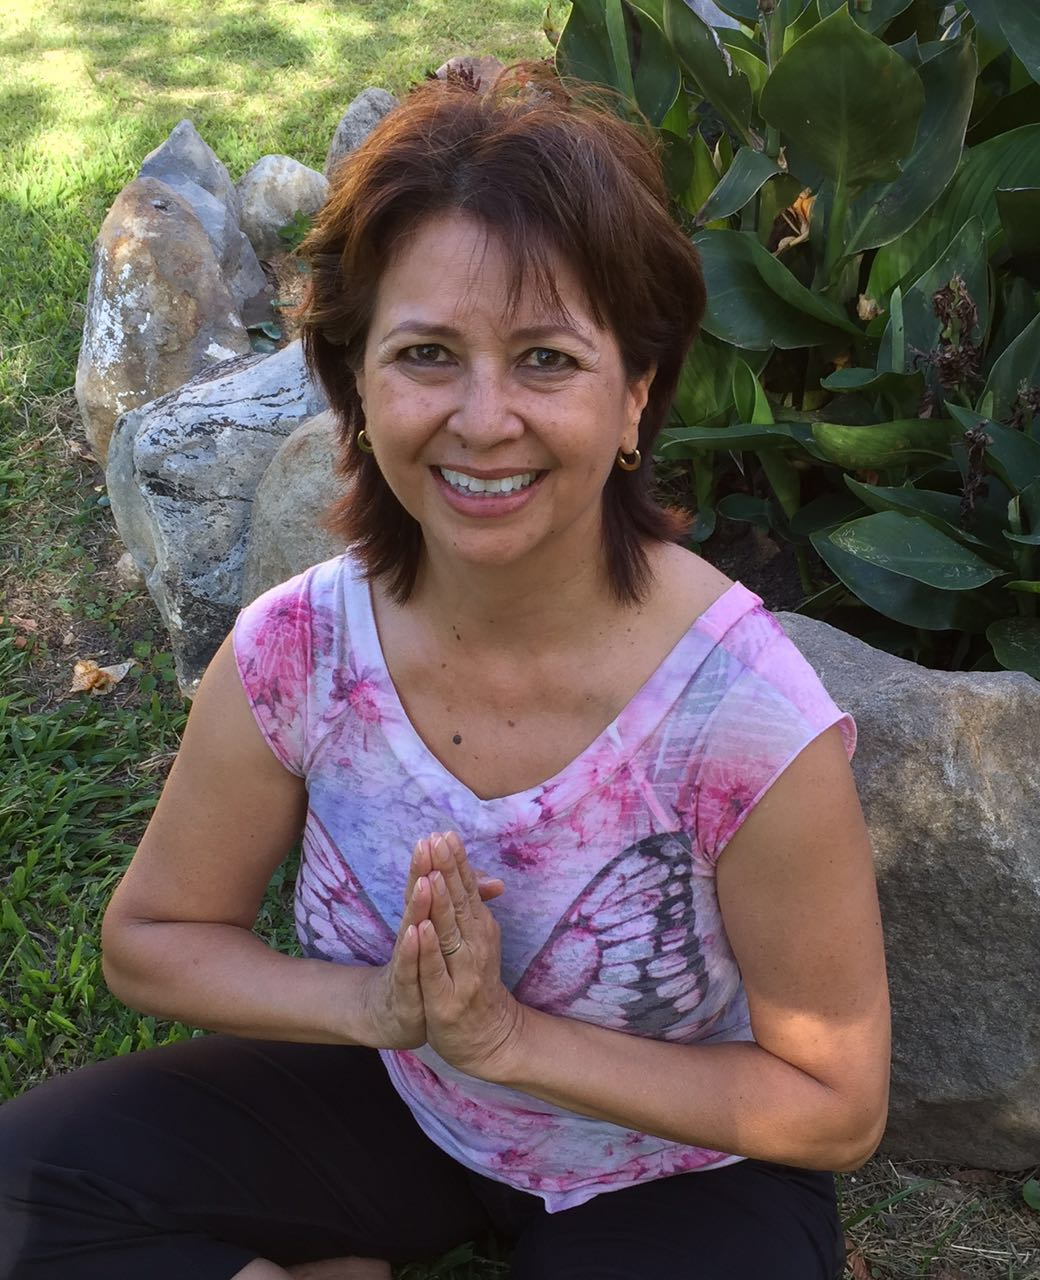 Doris Martinez, E-RYT 200 Certified Therapeutic Yoga Instructor - Doris began her career in health and fitness in 1980. Over the past 30+ years she has been a Certified Group Fitness Instructor, Pilates Instructor, Master Personal Trainer, and Nutrition Counselor, to name a few. She started practicing yoga in 1999, received her first Yoga Certification from the American Council on Exercise in 2000, and then went on to complete her Yoga Alliance 200-hour and Therapeutic Yoga Certifications in San Francisco, California.Doris enjoys teaching many different types of yoga classes from Yoga Fundamentals to Vinyasa Flow to Yoga for Kids, but her greatest passion is supporting the healing process of individuals through the gifts of Therapeutic Yoga. Through the teachings of Therapeutic Yoga she hopes to help those recovering from, or living with, injury or illness find more ease in their body, peace of mind, and greater levels of health and well-being.